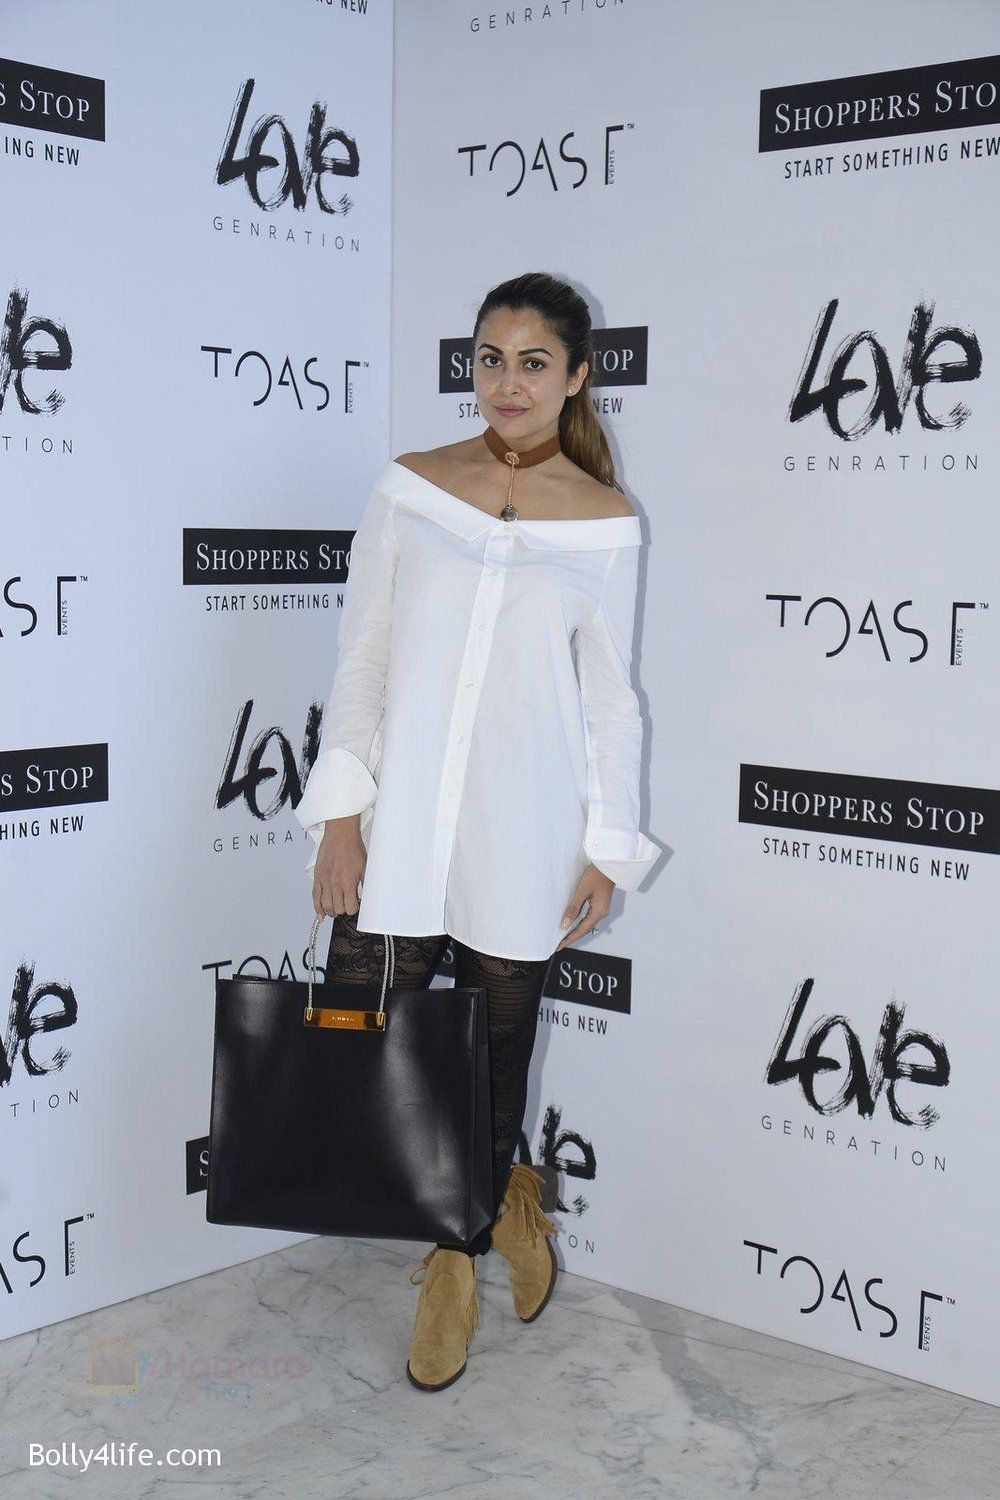 Amrita-Arora-at-Love-Generation-launch-at-Shoppers-Stop-on-7th-Oct-2016-40.jpg